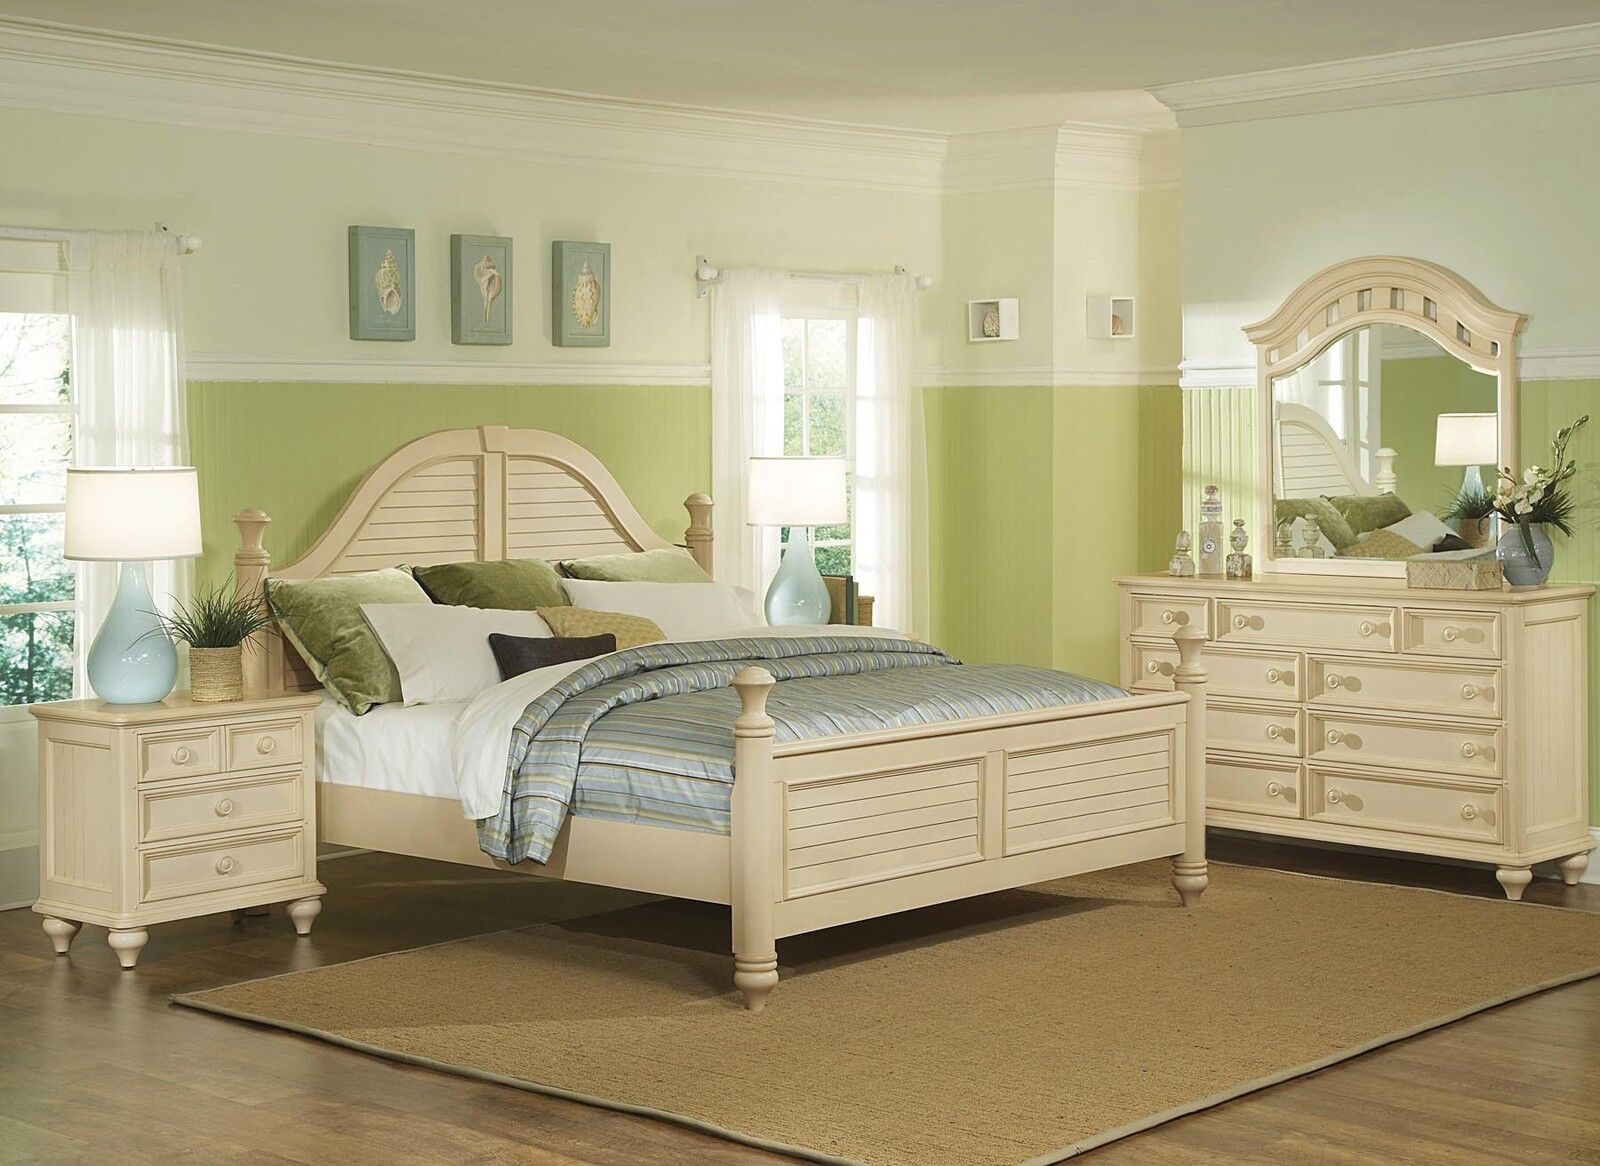 Antique white furniture bed mattress sale White wooden bedroom furniture sets